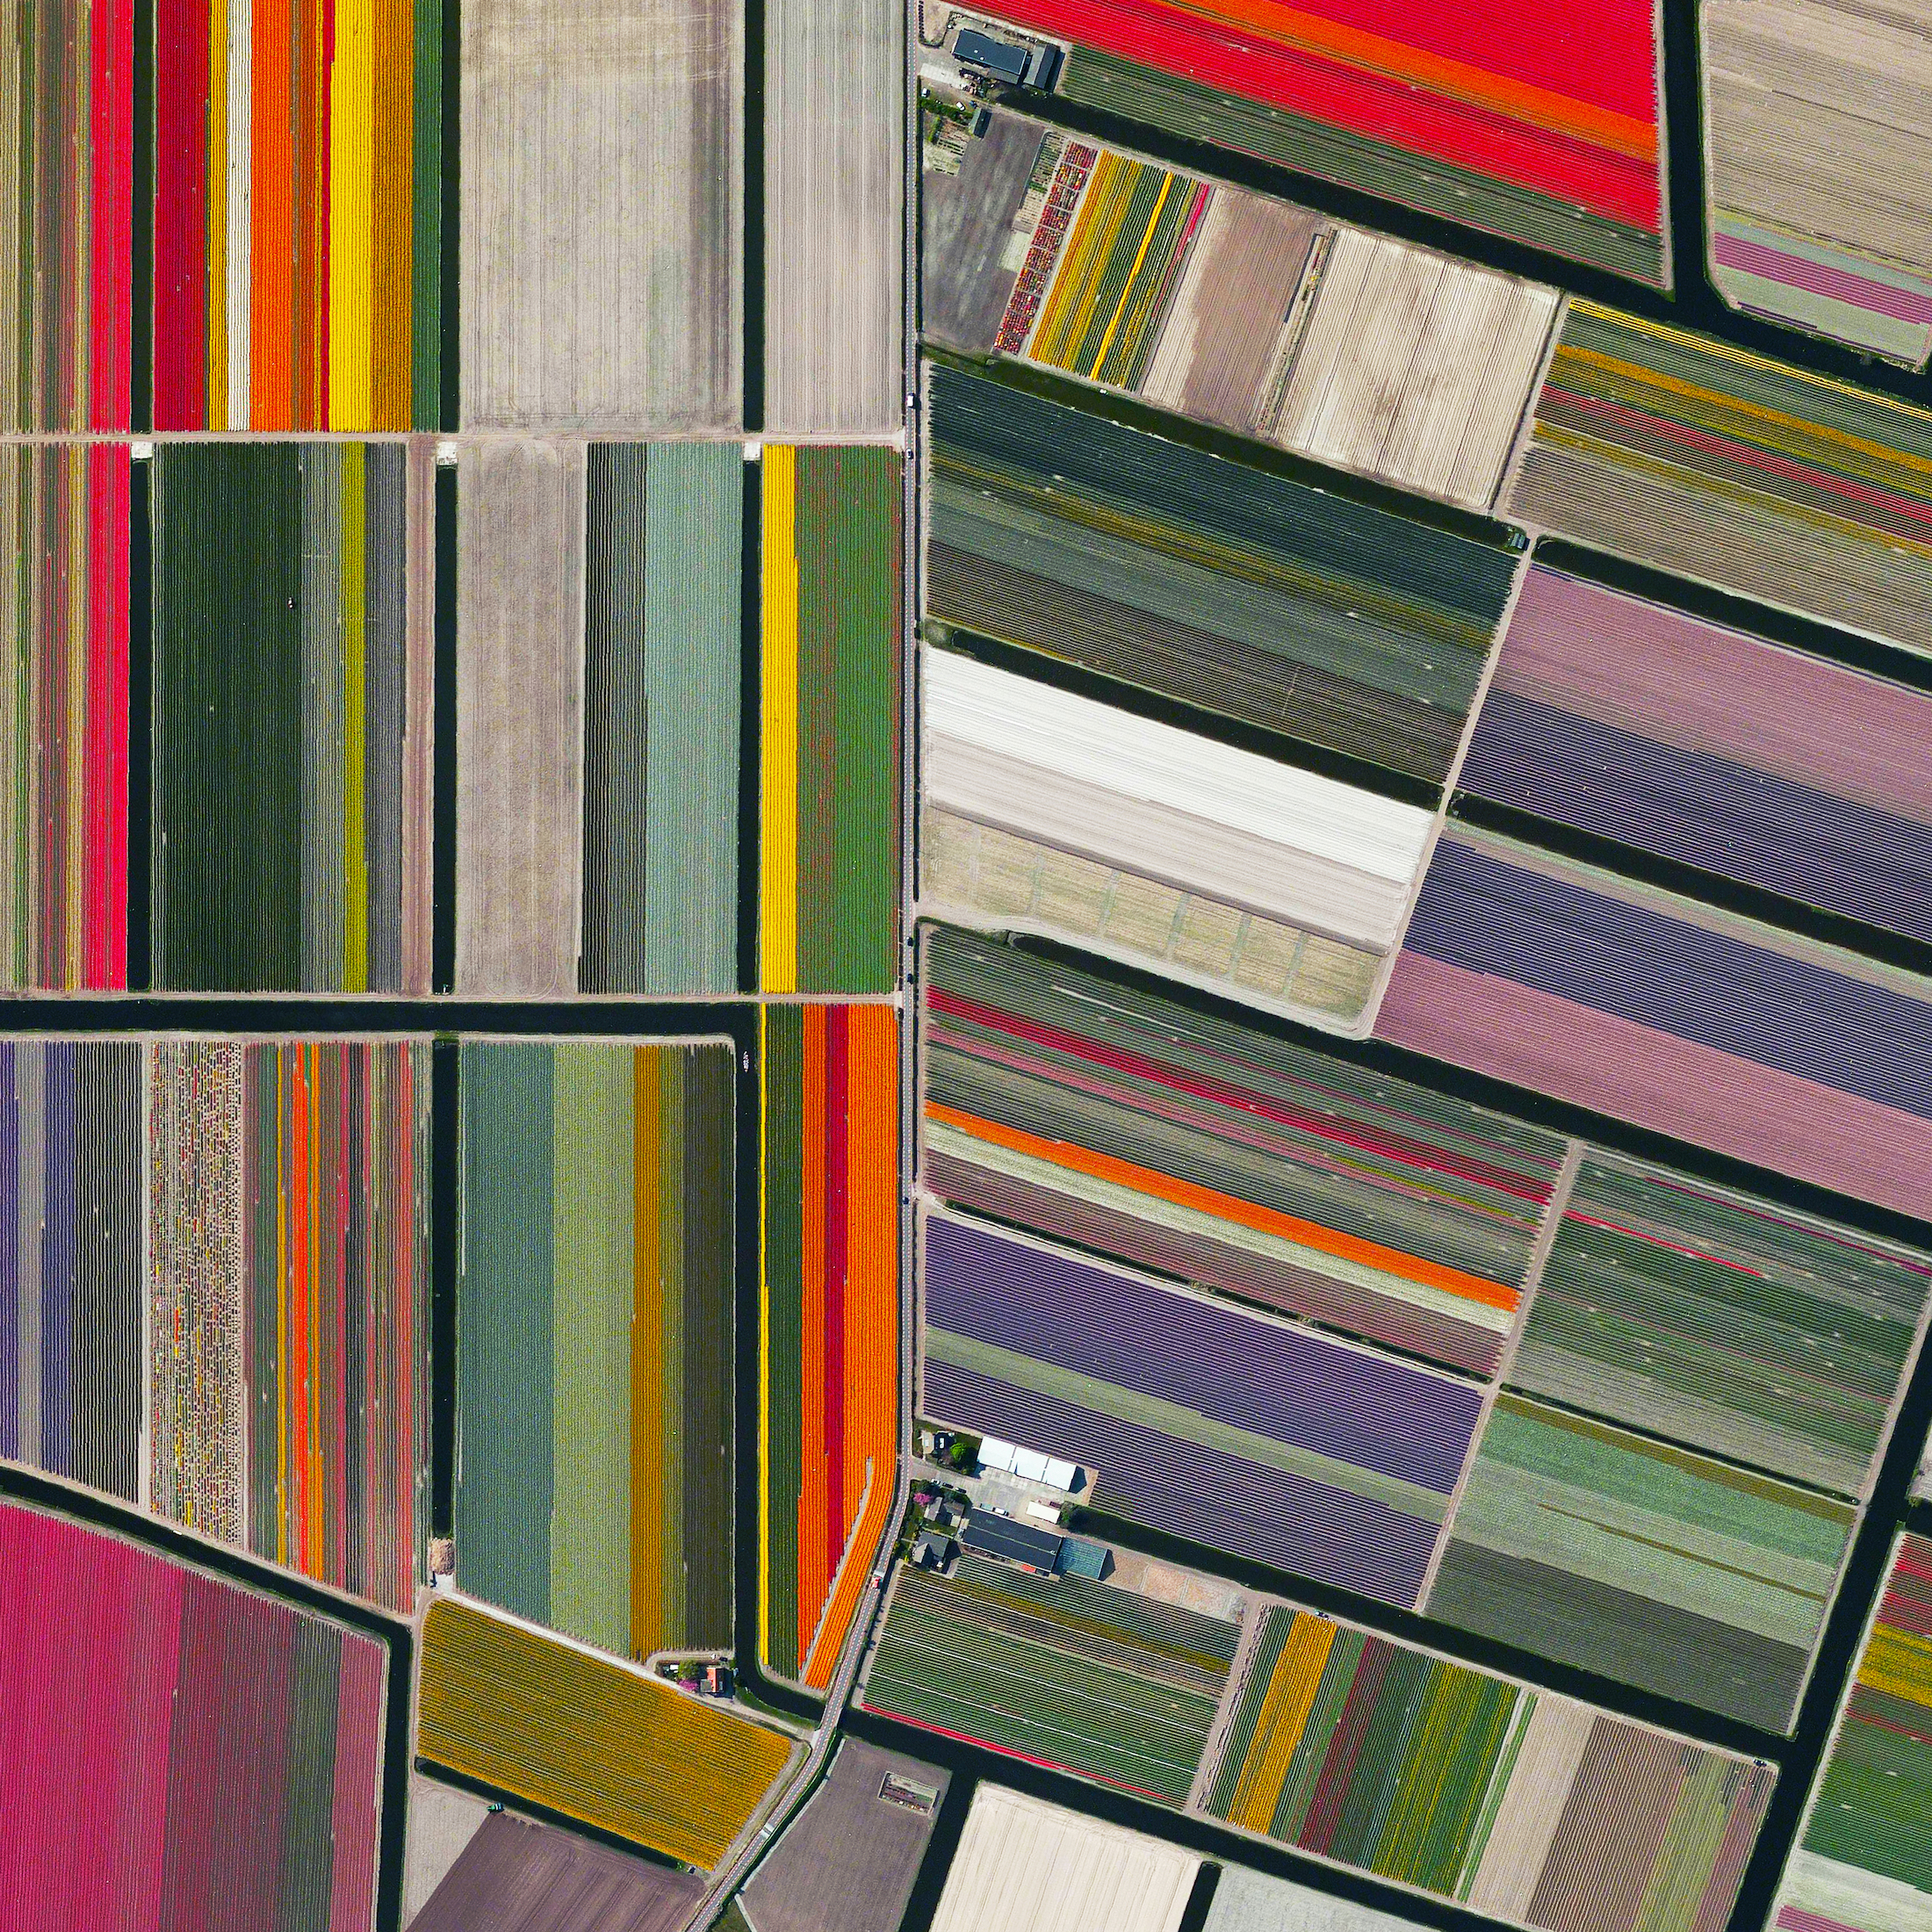 12/31/2015   Tulip fields   Lisse, Netherlands  52.276355786°, 4.557080790°    Here's our final favorite Overview from 2015 - tulip fields in Lisse, Netherlands. I hope everyone has a beautiful and colorful New Year. See you in 2016!